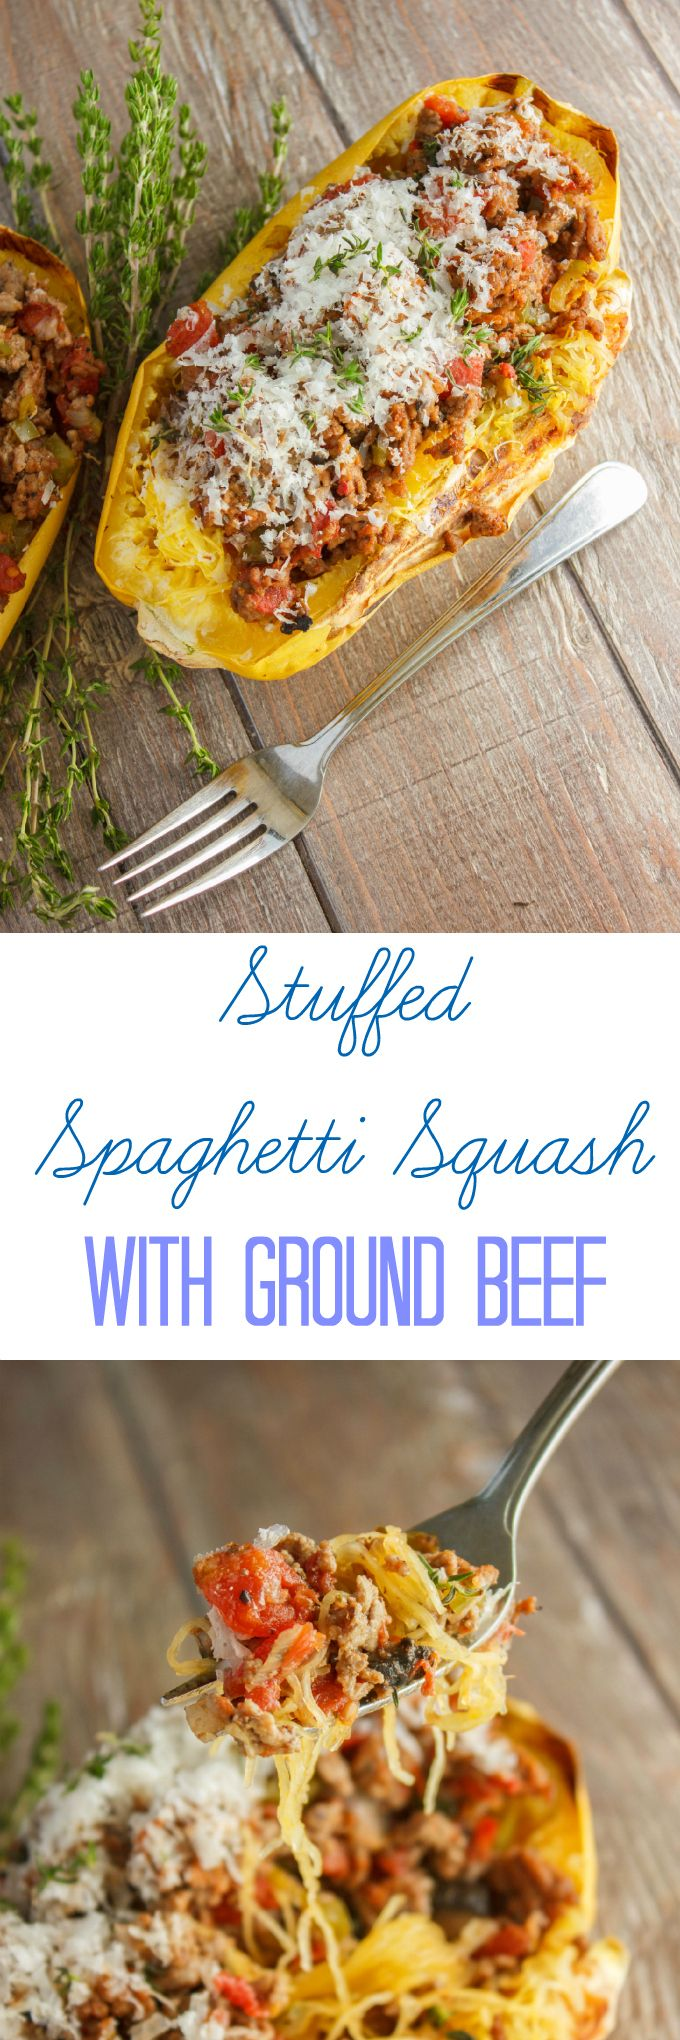 Stuffed Spaghetti Squash with Tomato and Ground Beef |